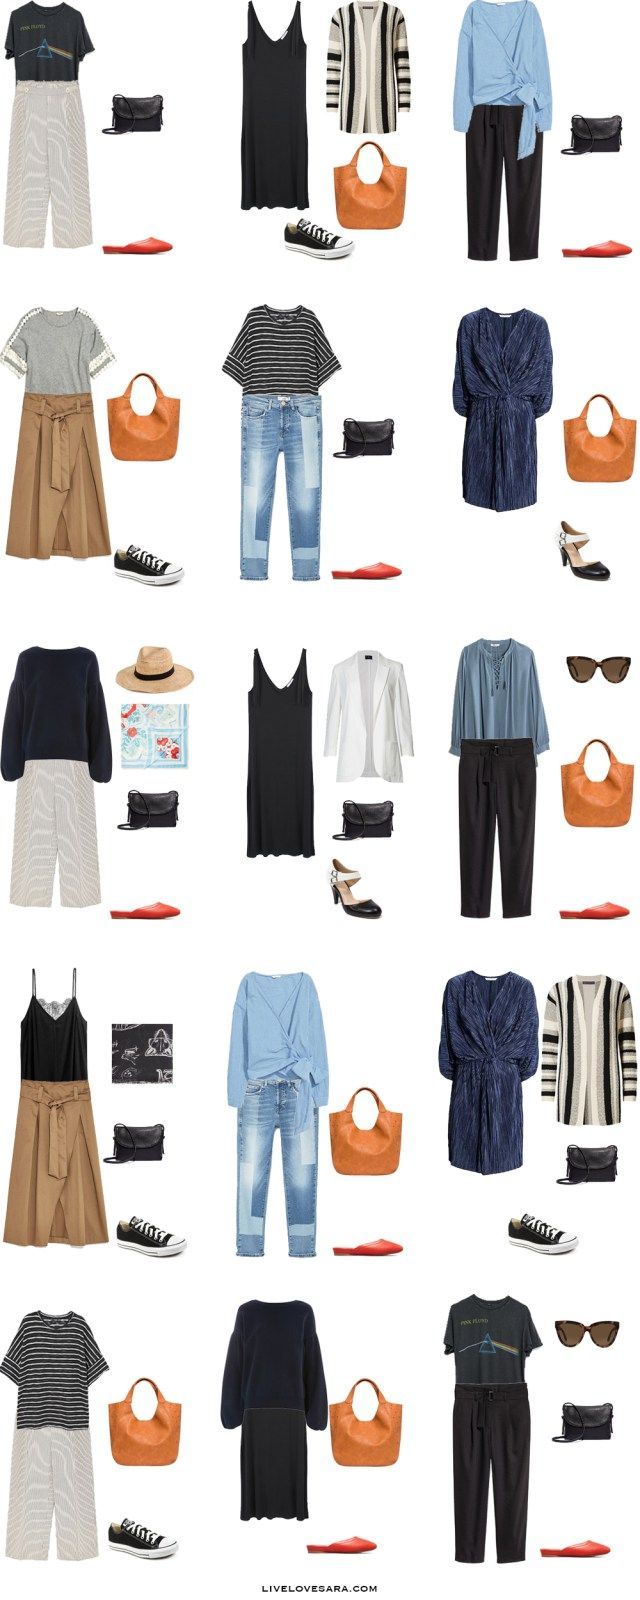 What to Wear in Hungary and Bulgaria Outfit Options 1-15 Packing Light List #packinglist #packinglight #travellight #travel #livelovesara